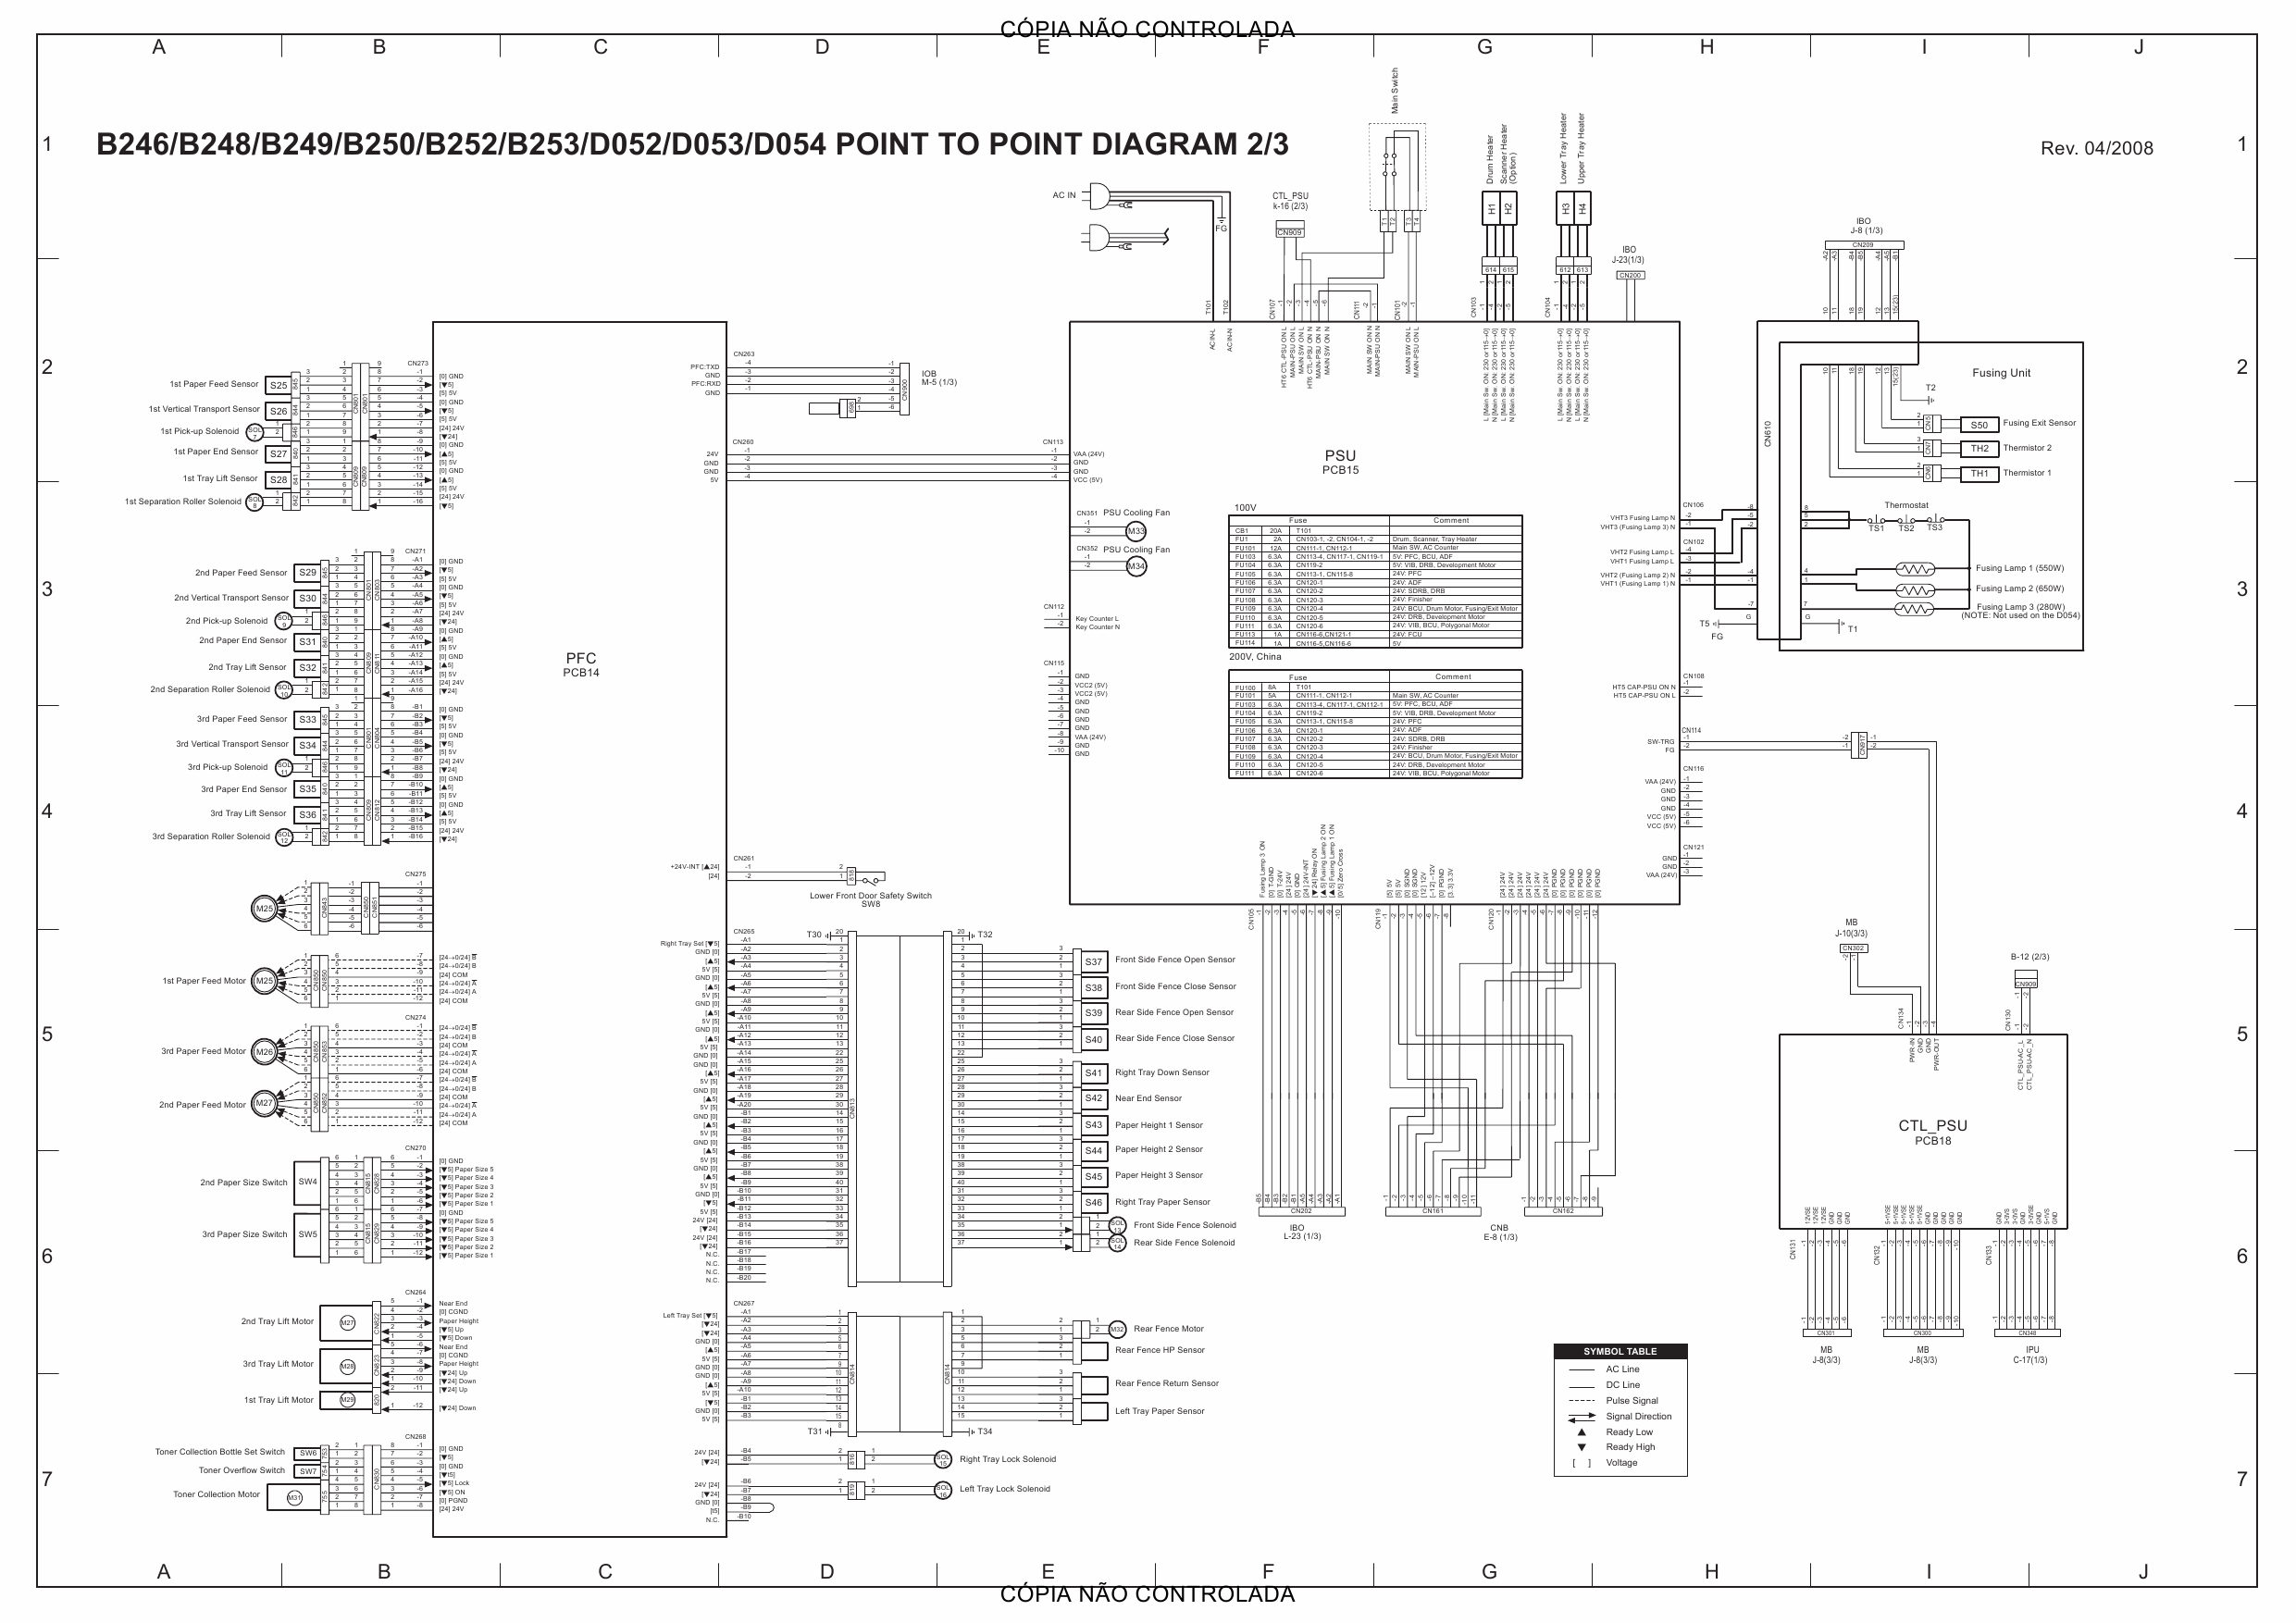 toshiba refrigerator wiring diagram with Toshiba E Studio 2051 Service Manual on puter Parts Diagram together with Single Phase  pressor For Air Condition besides Wiring Diagram Kulkas also Single Phase  pressor For Air Condition furthermore Crosley Wiring Diagram.